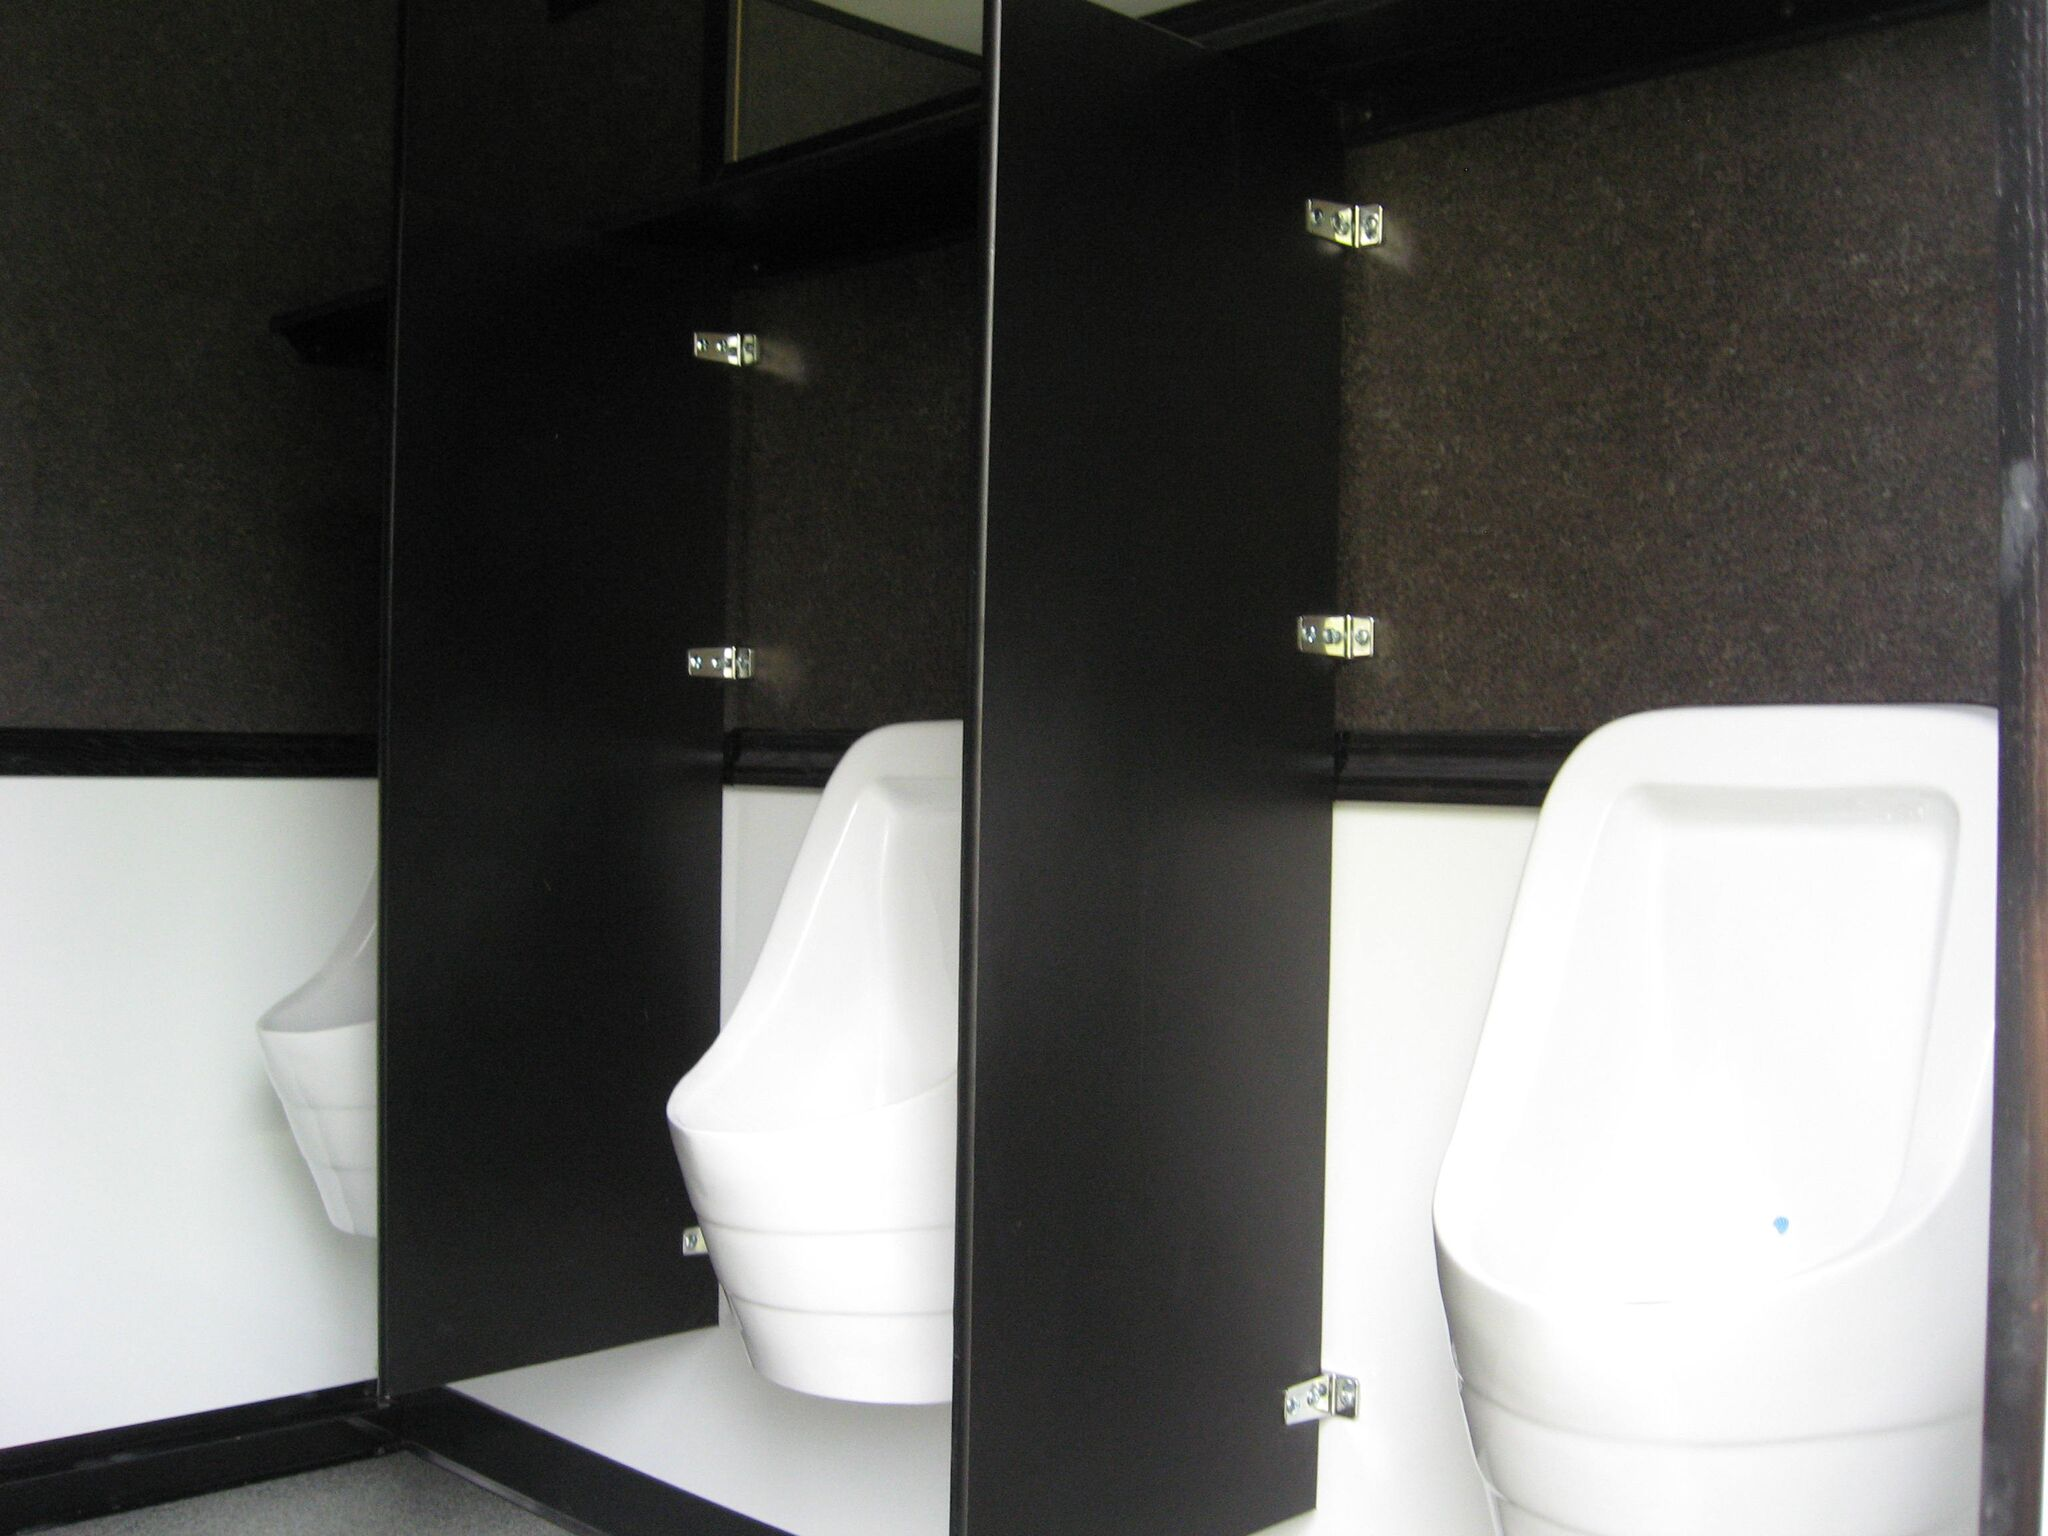 Three urinals installed in a restroom trailer and separated by separators